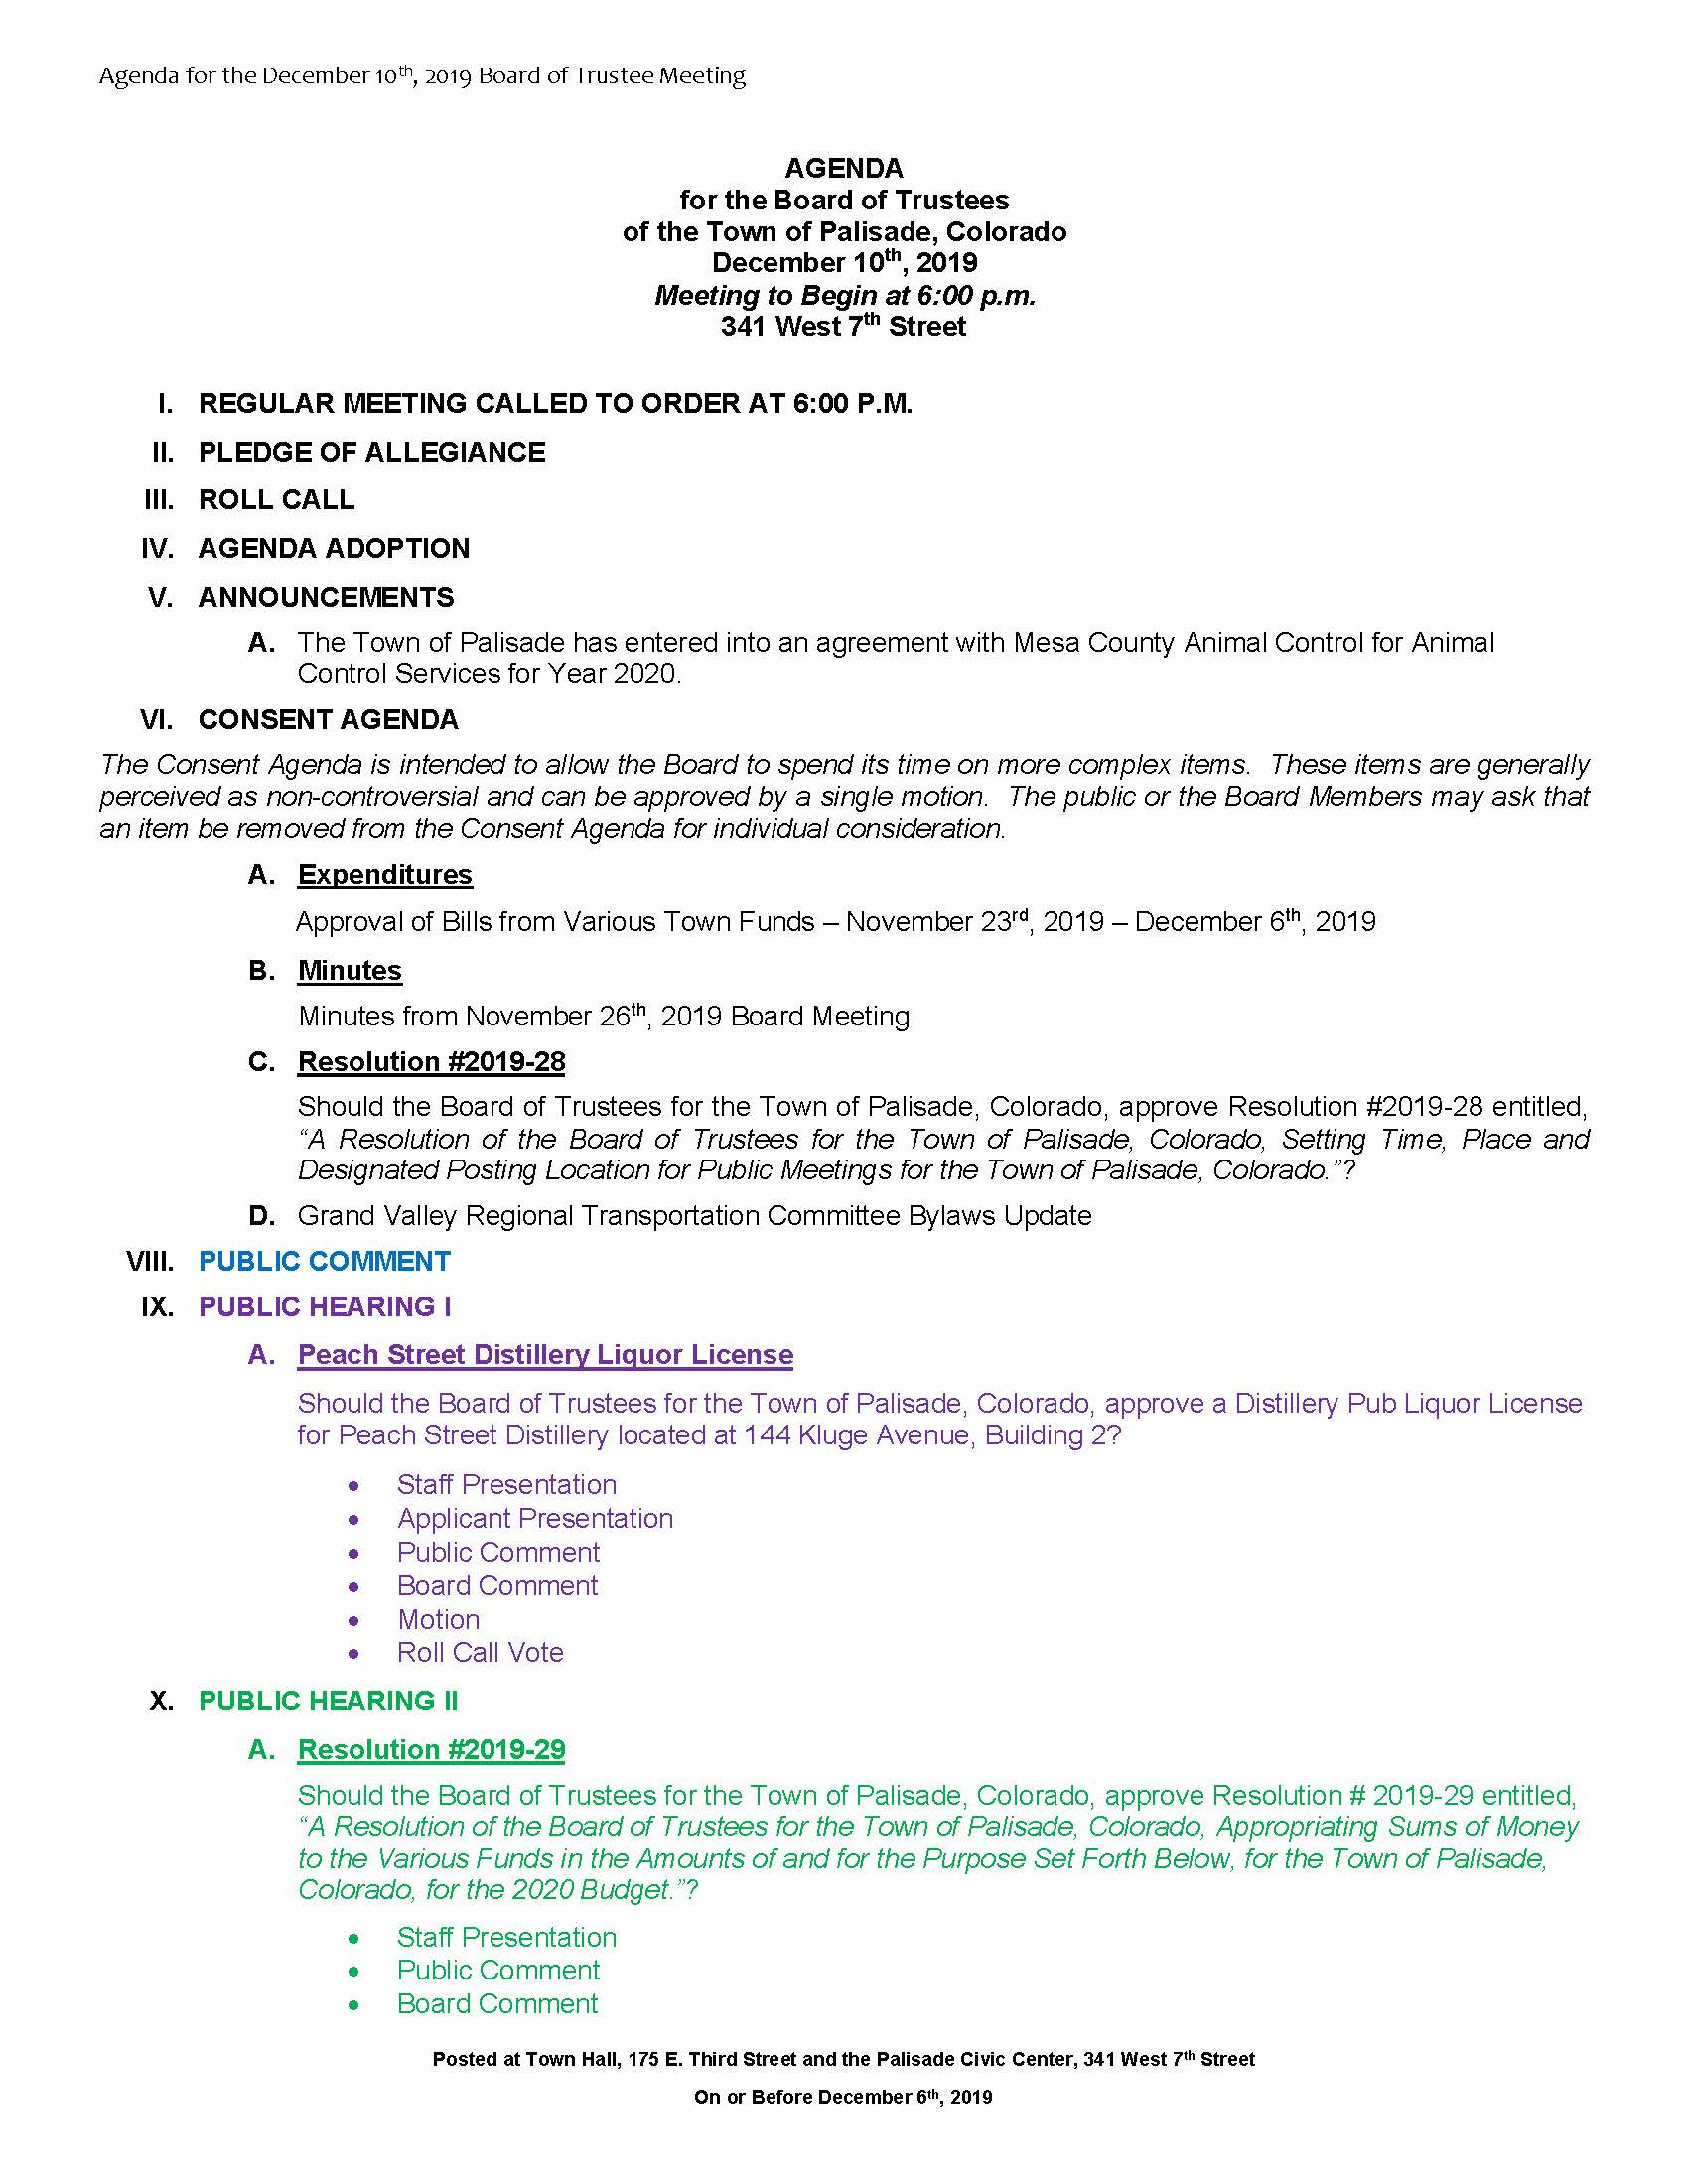 December 10th 2019 Board Meeting Agenda Page 1